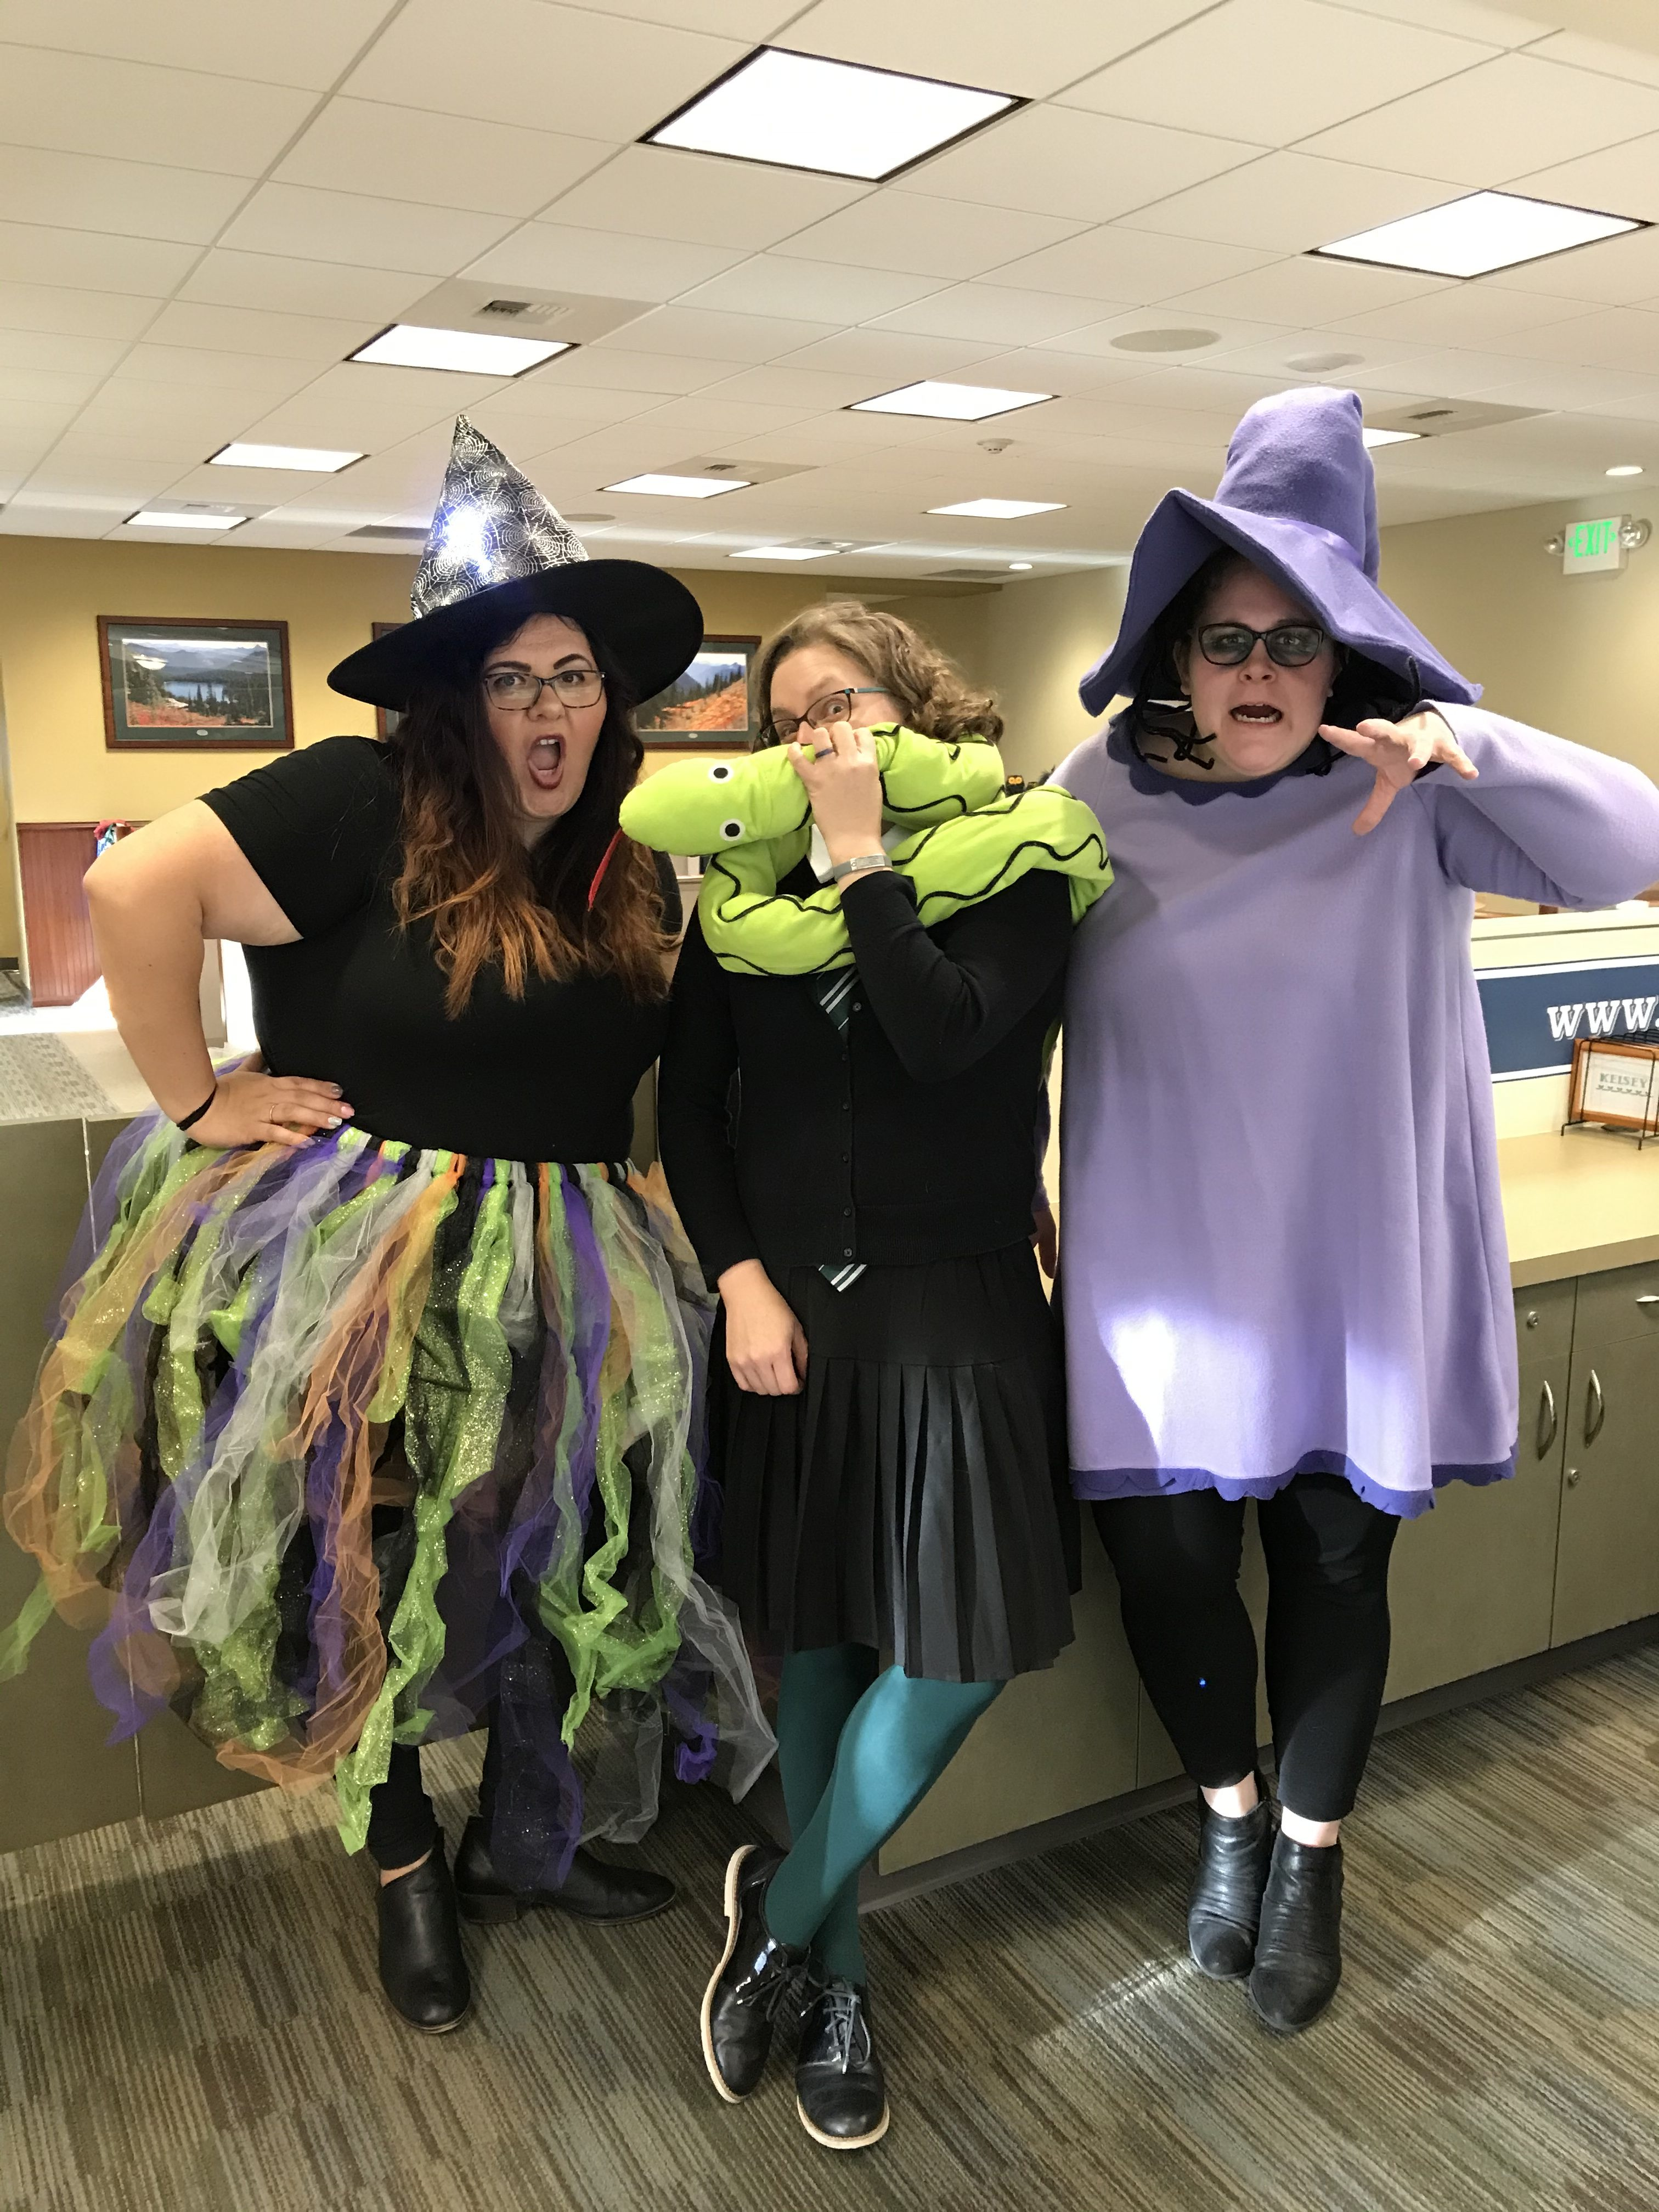 White River Credit Union employees dressed up for Halloween